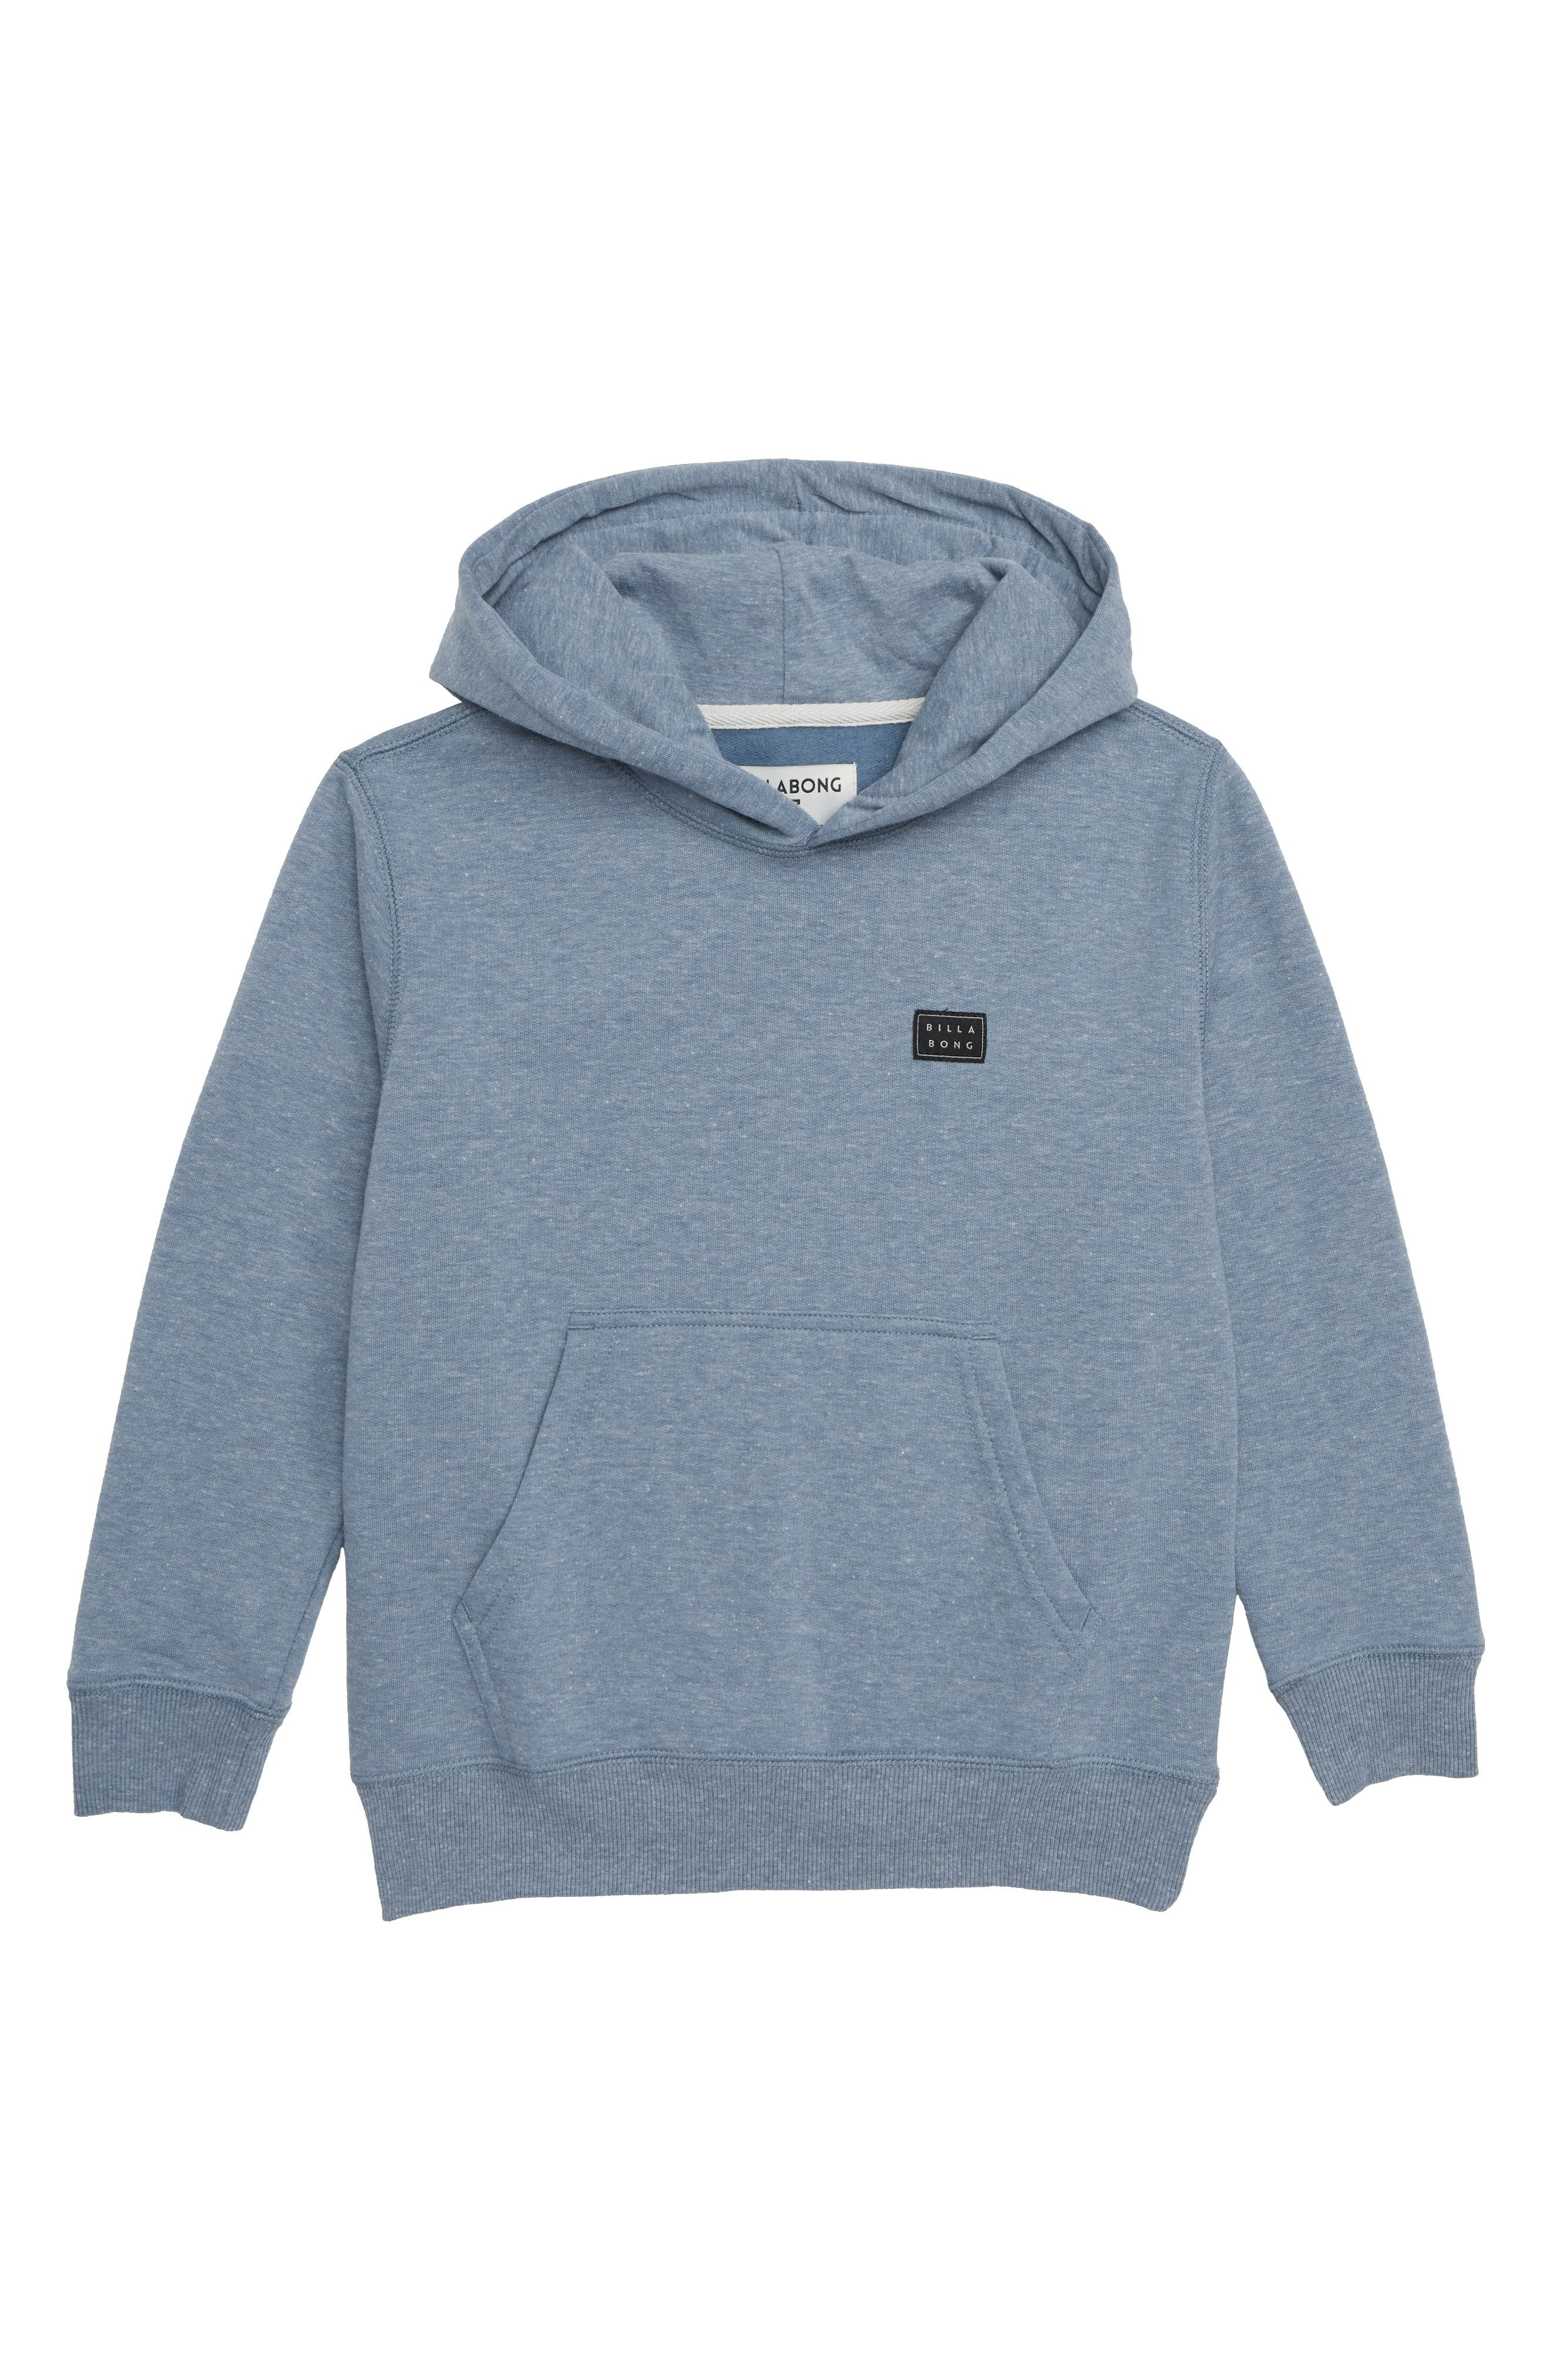 All Day Hoodie,                             Main thumbnail 1, color,                             Washed Blue